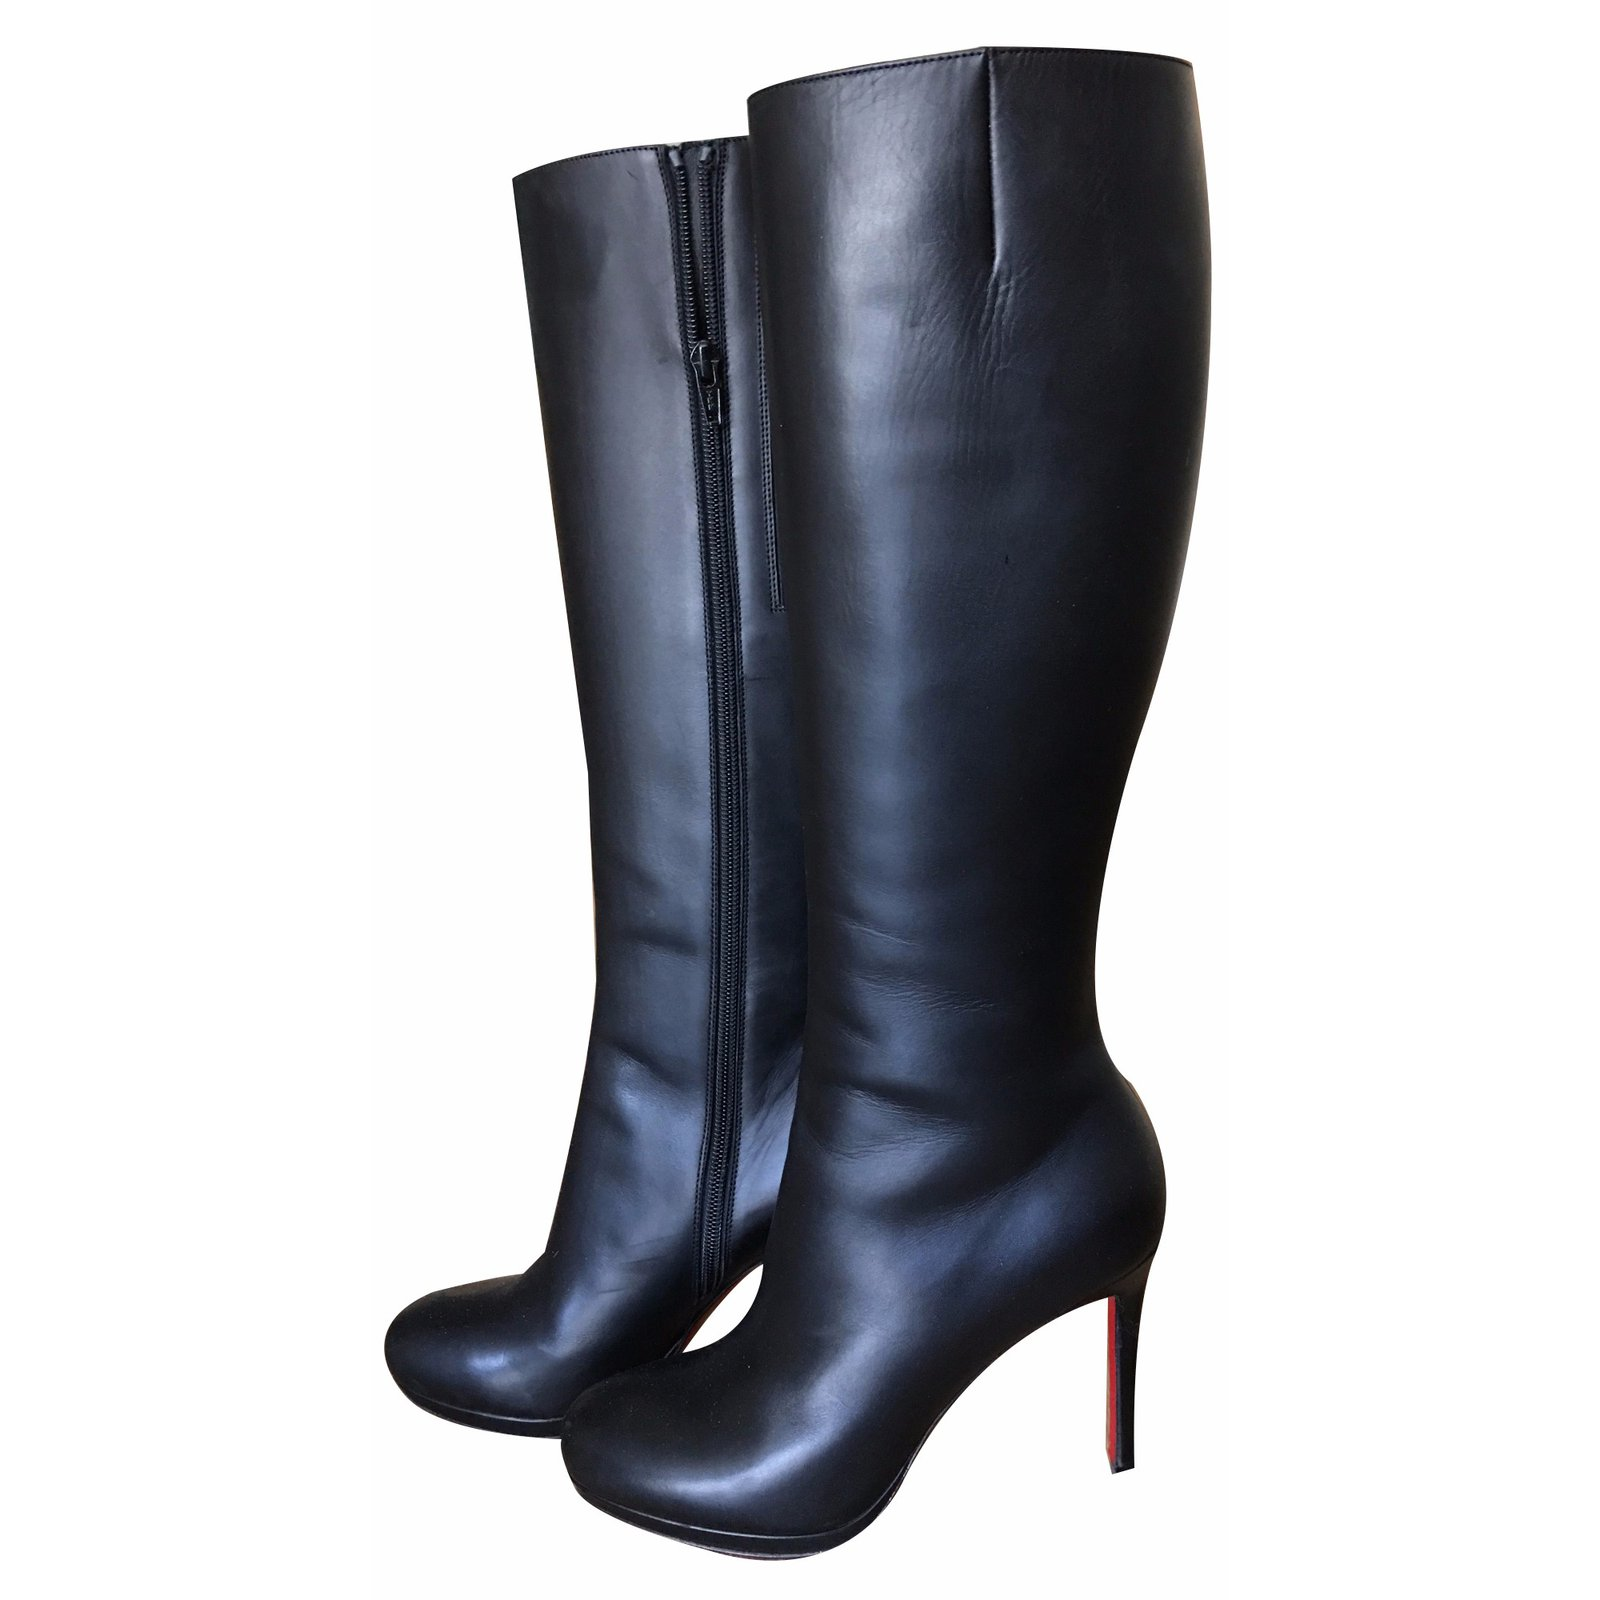 100% authentic c1289 ca0b8 Christian Louboutin Botalili boots